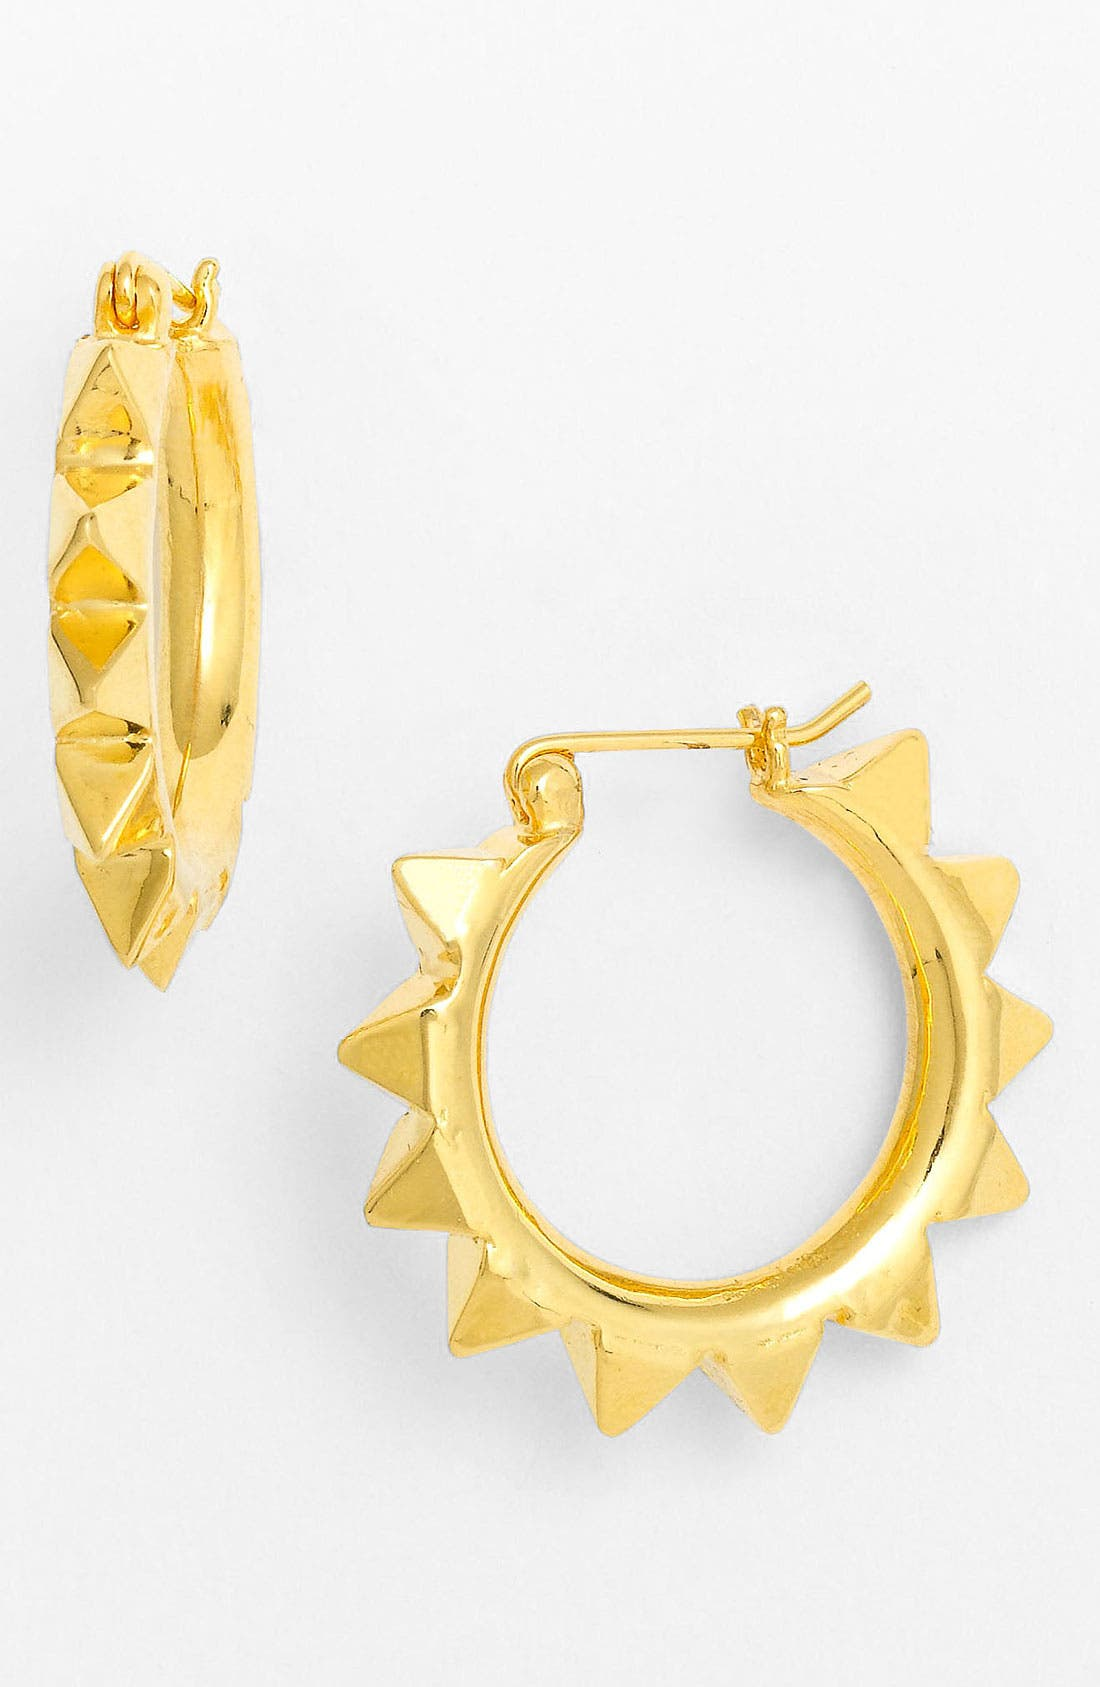 Alternate Image 1 Selected - Tom Binns 'Protopunk - Small' Stud Hoop Earrings